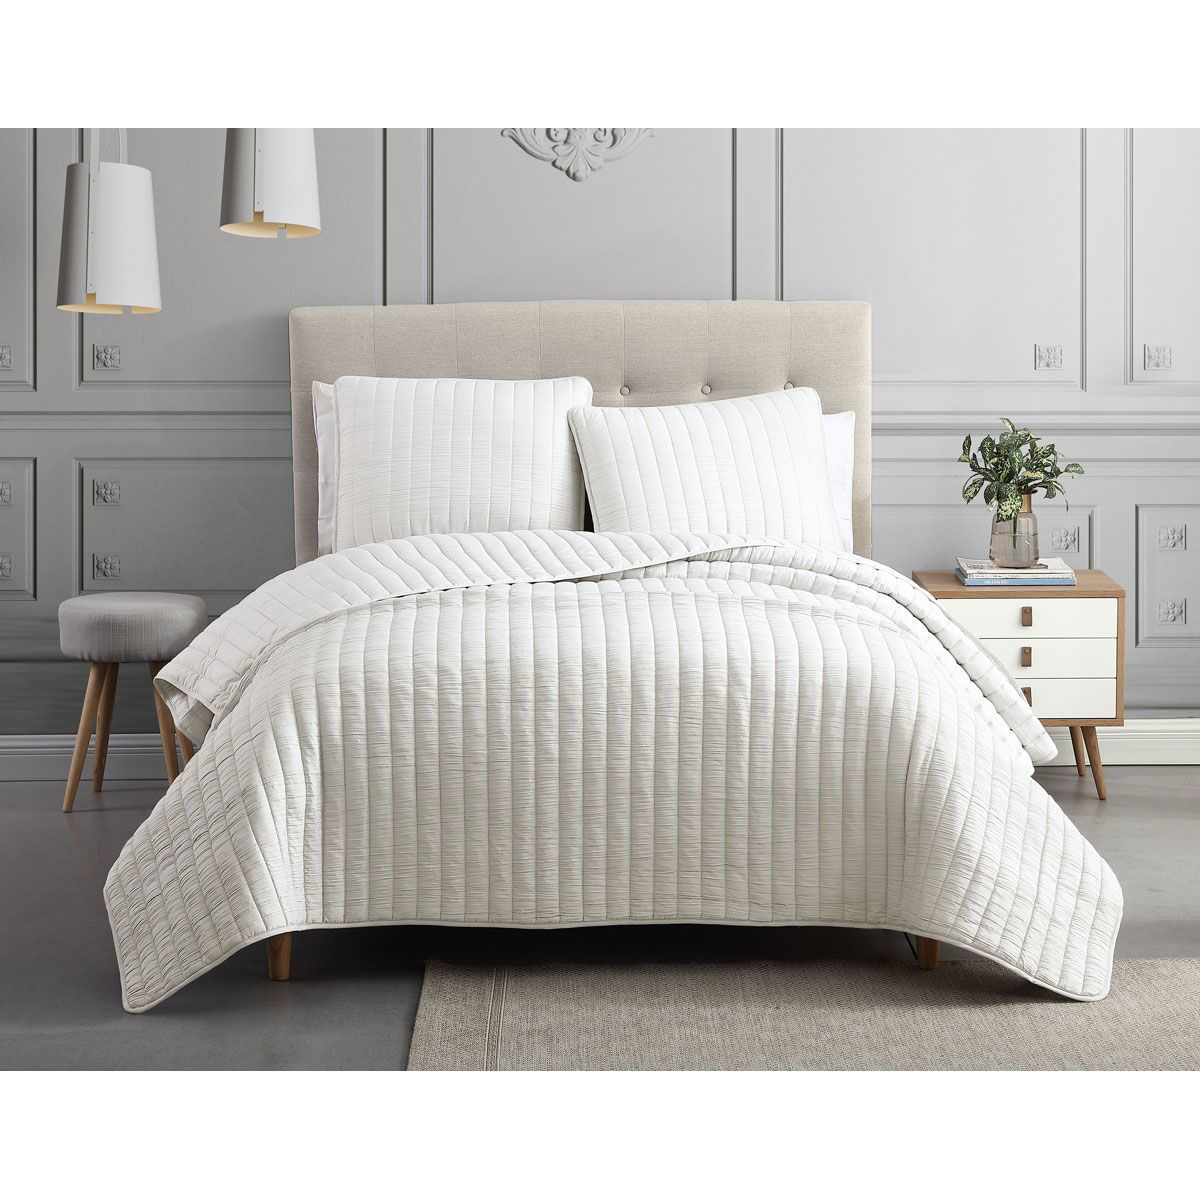 Picture of SUPER SOFT 3 PIECE KING COVERLET SET